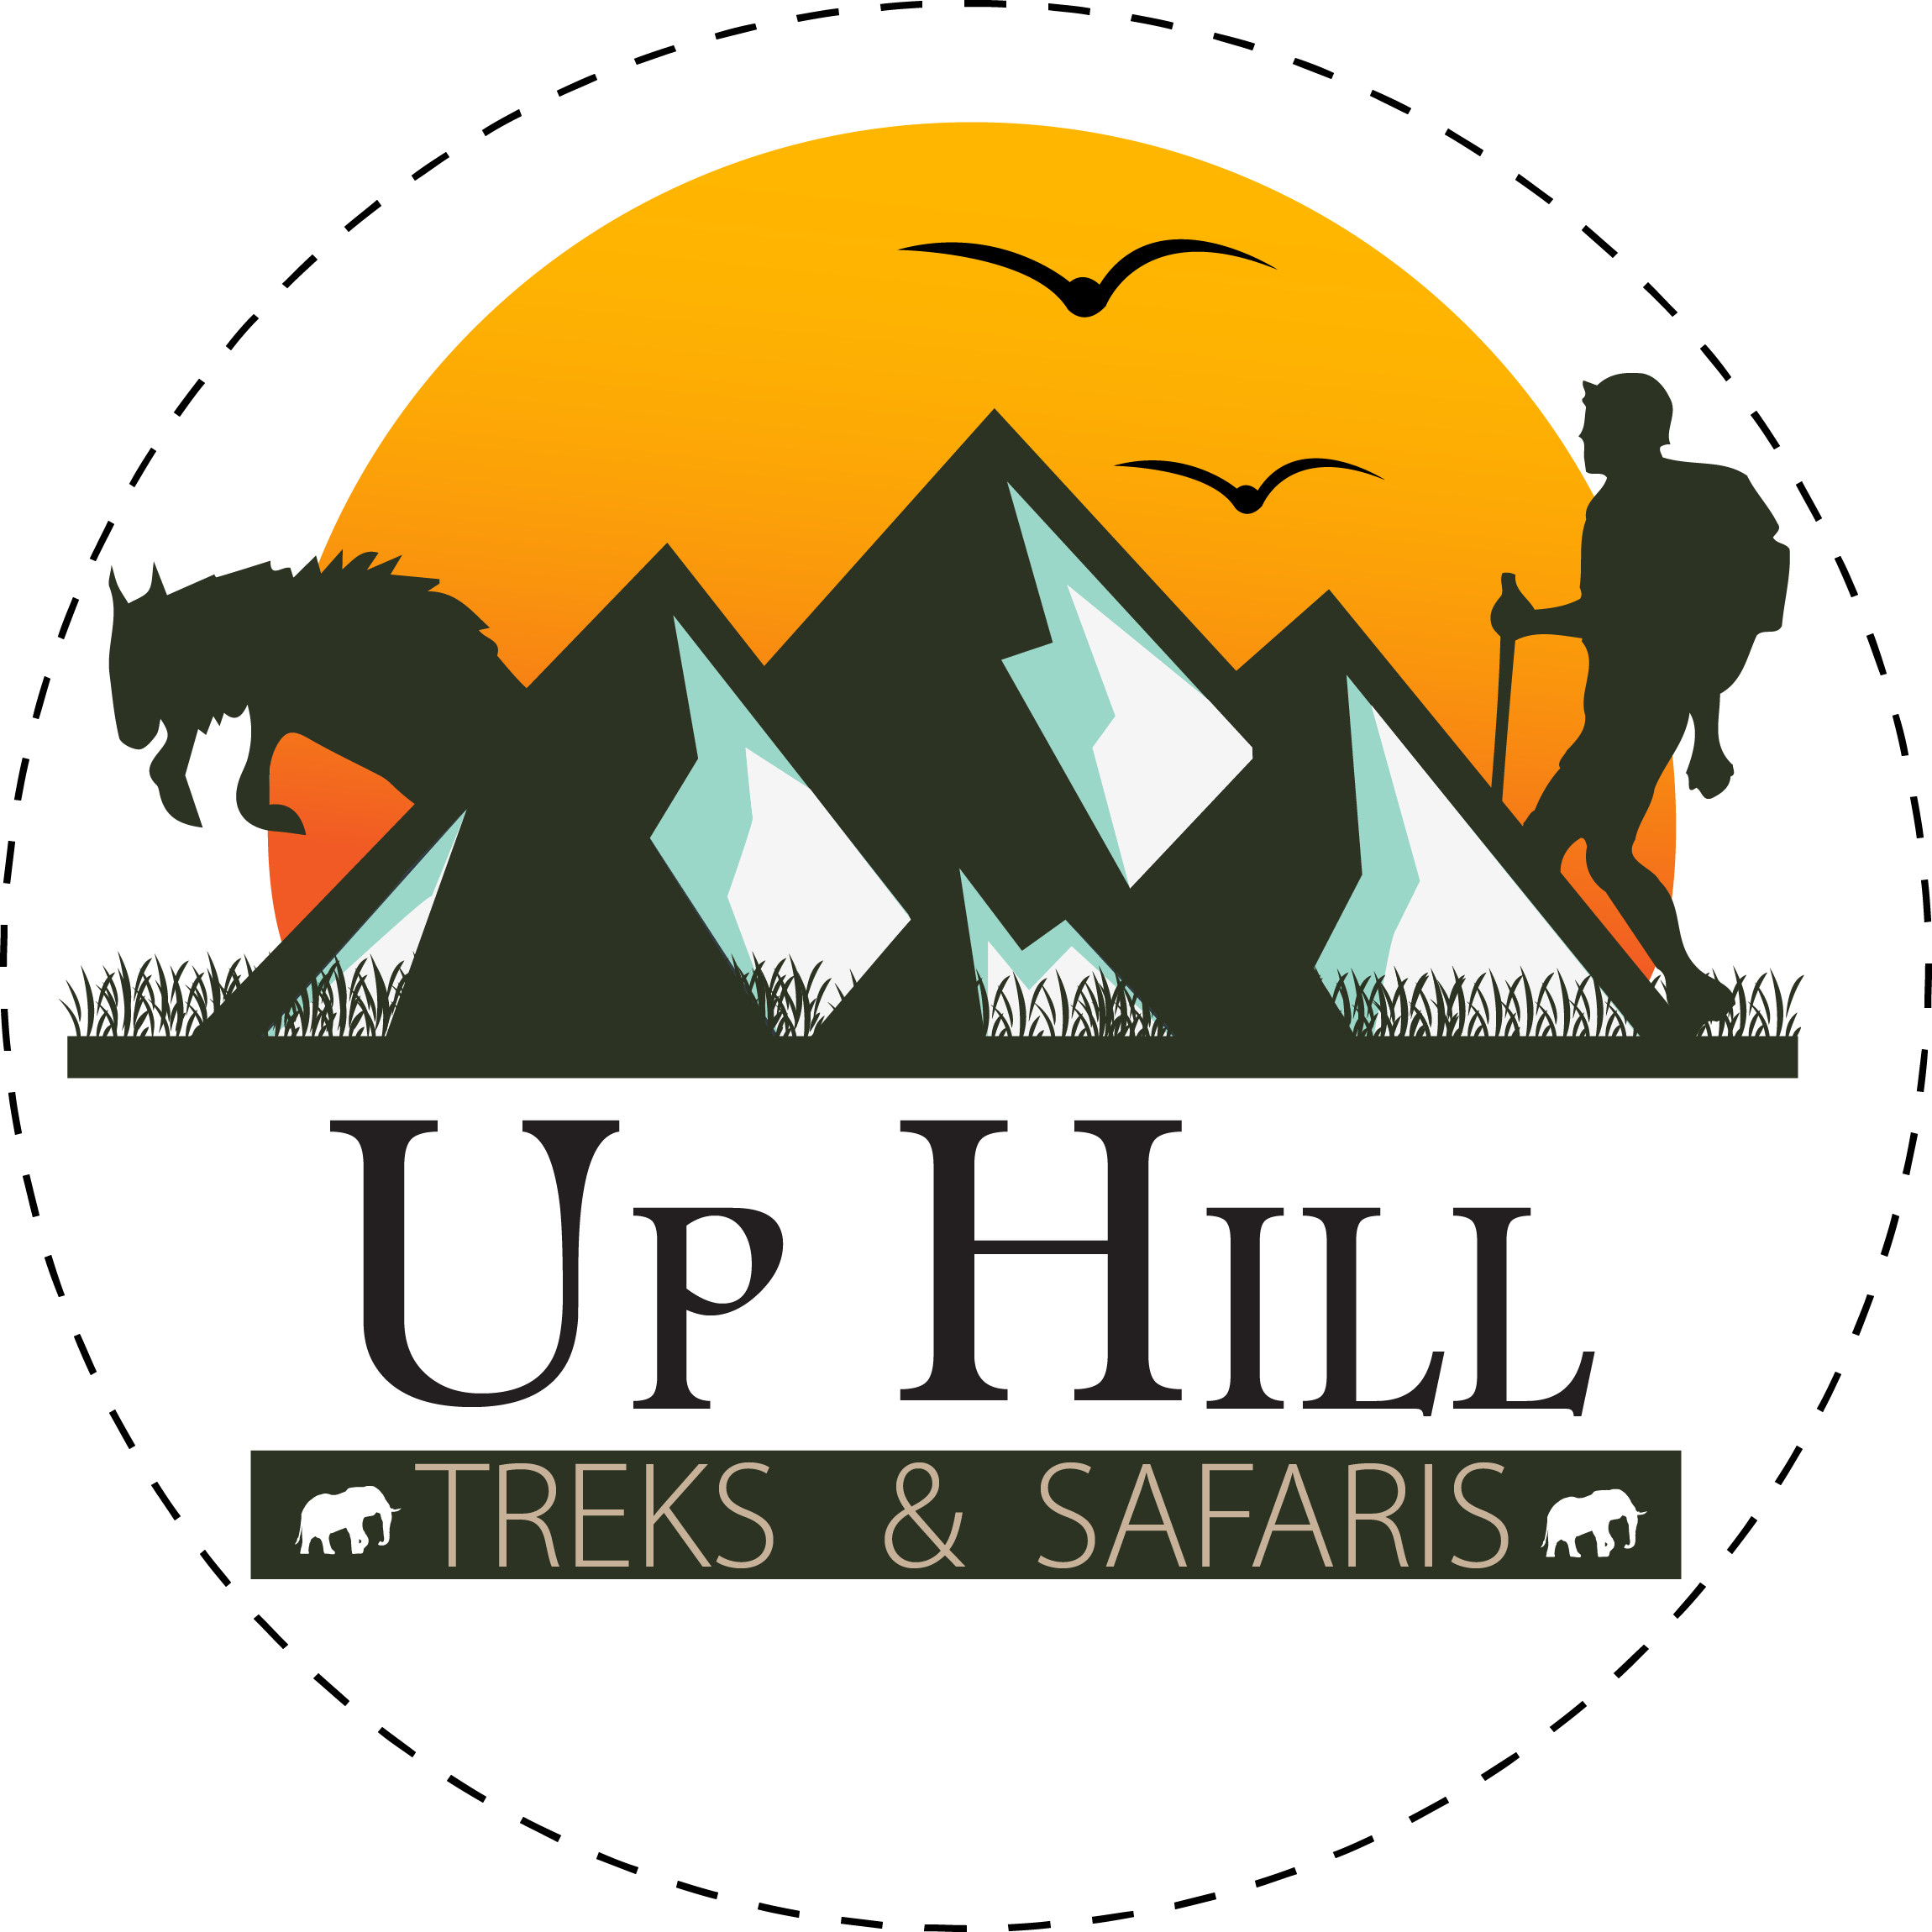 Uphill Treks and Safaris